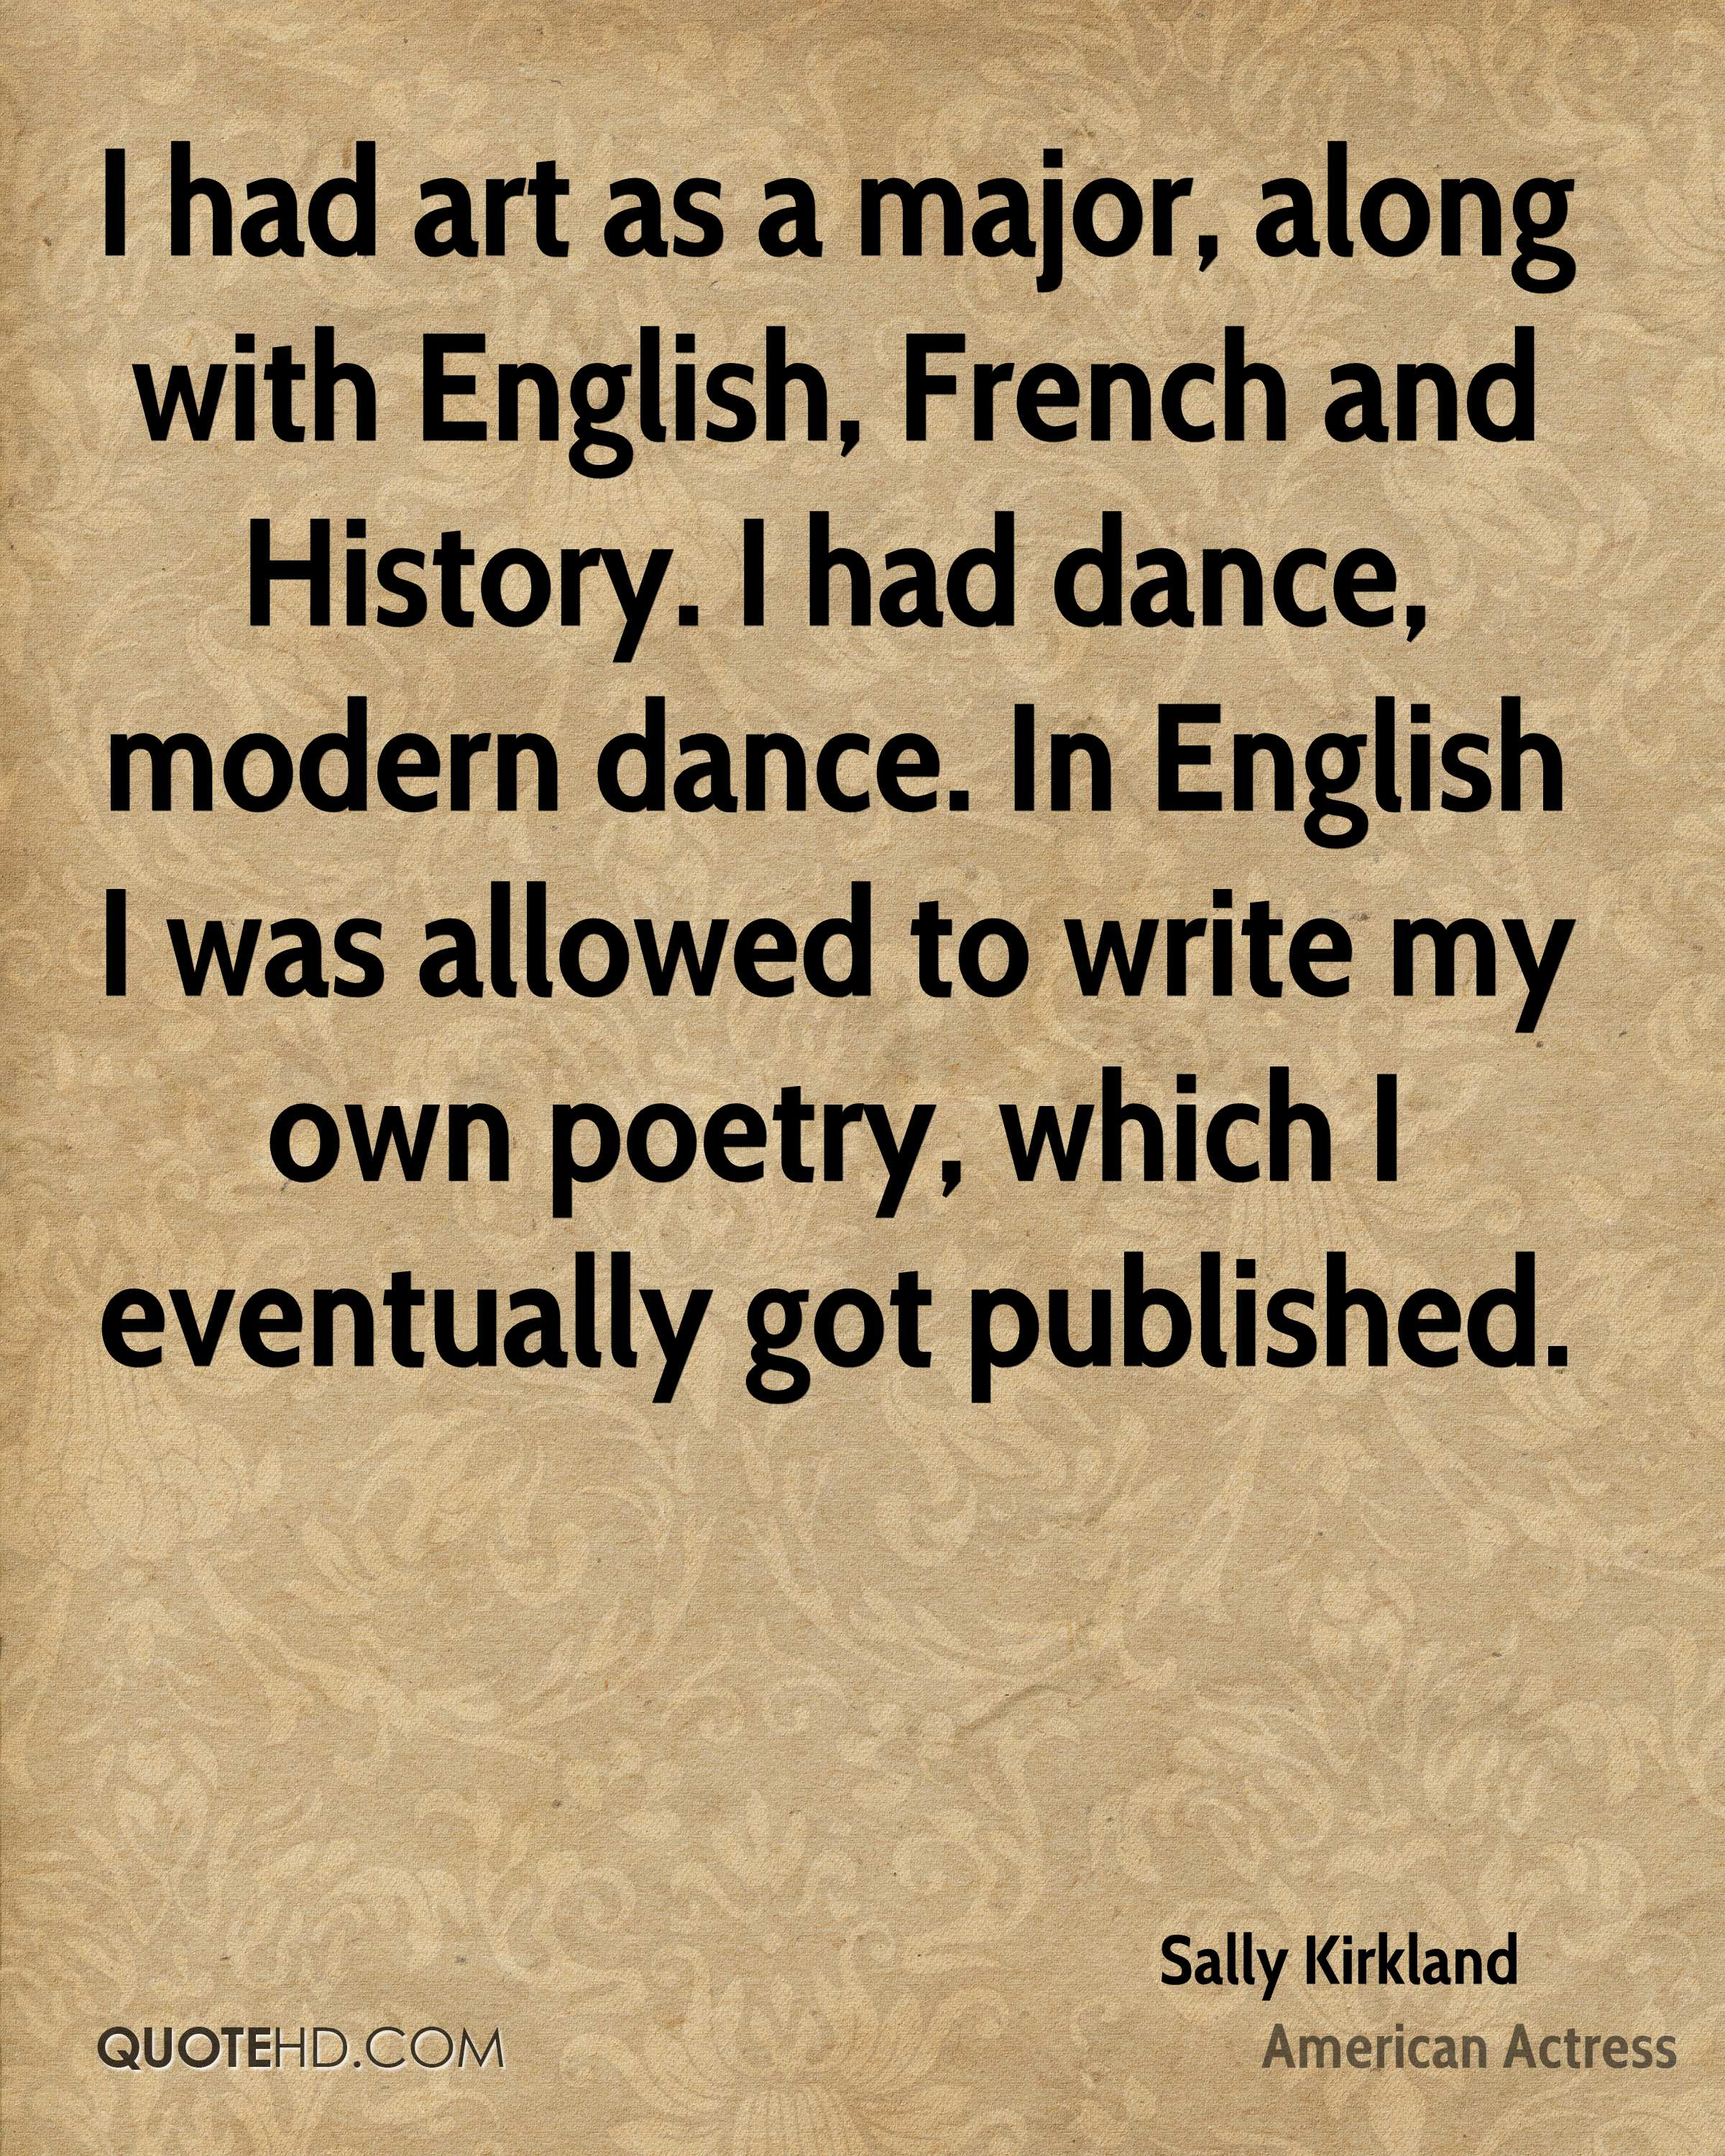 I had art as a major, along with English, French and History. I had dance, modern dance. In English I was allowed to write my own poetry, which I eventually got published.